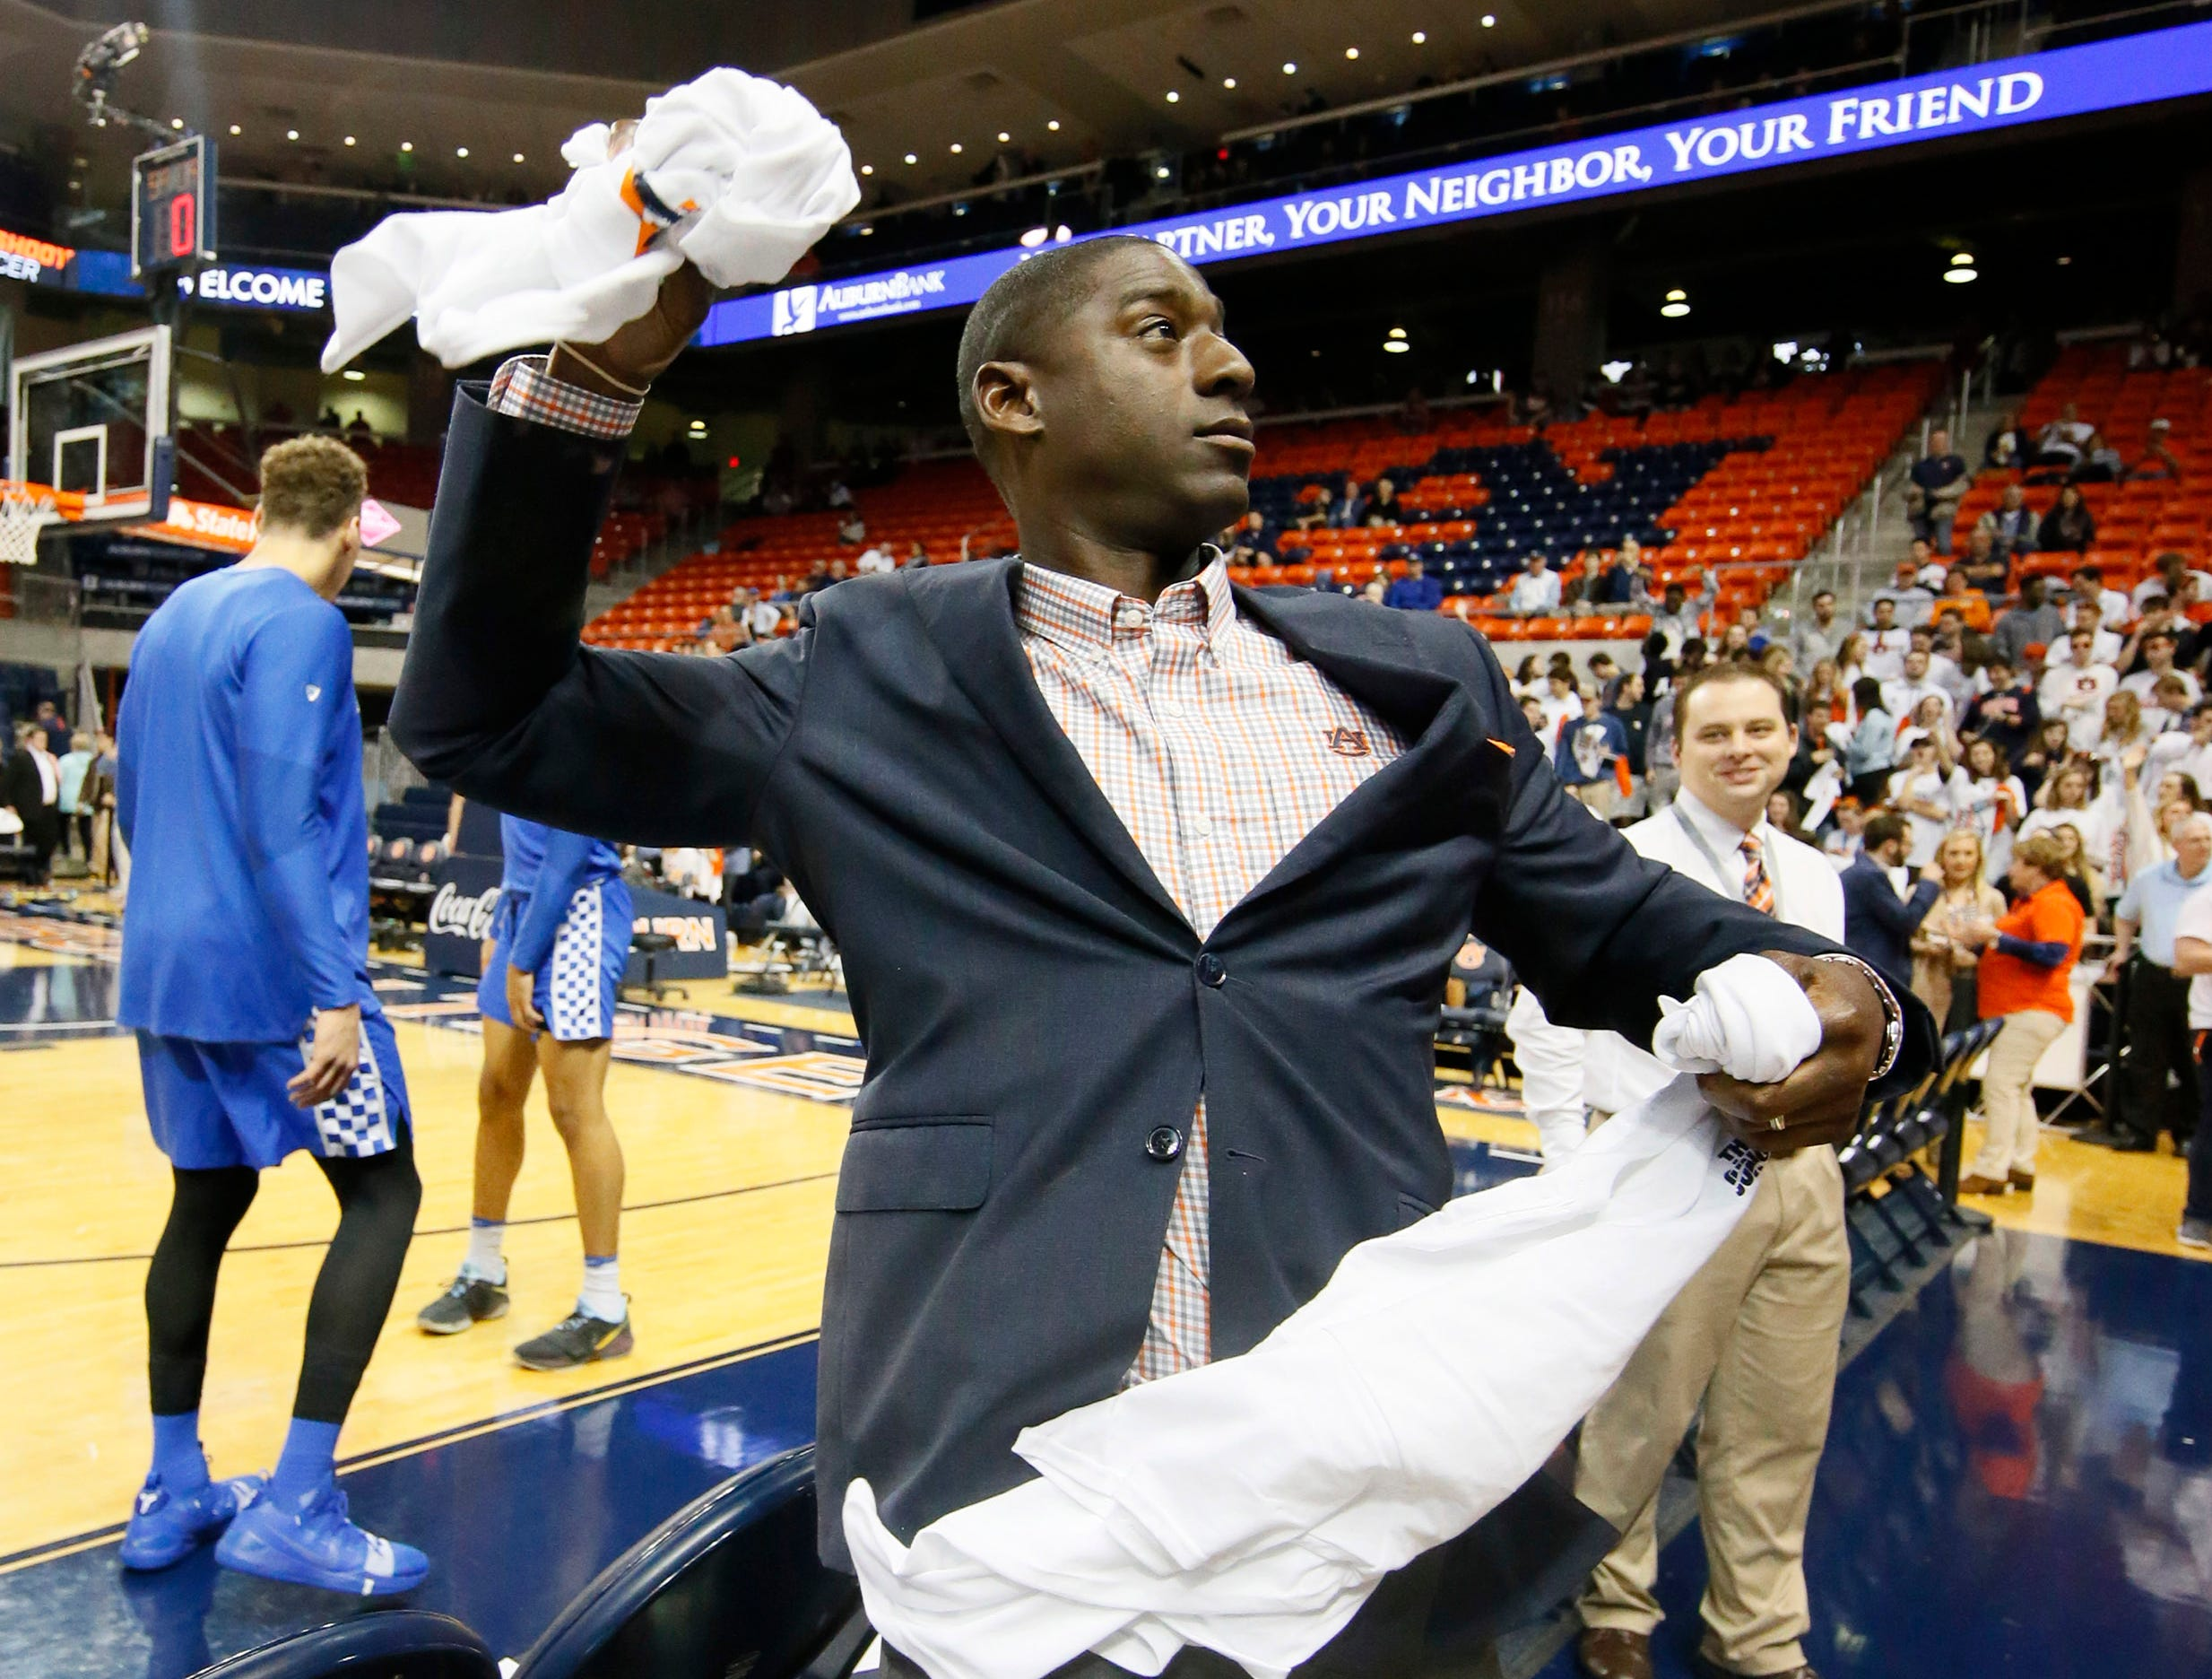 Jan 19, 2019; Auburn, AL, USA; Auburn Tigers athletic director Allen Greene throws t-shirts to the student section before the game against the Kentucky Wildcats at Auburn Arena. Mandatory Credit: John Reed-USA TODAY Sports